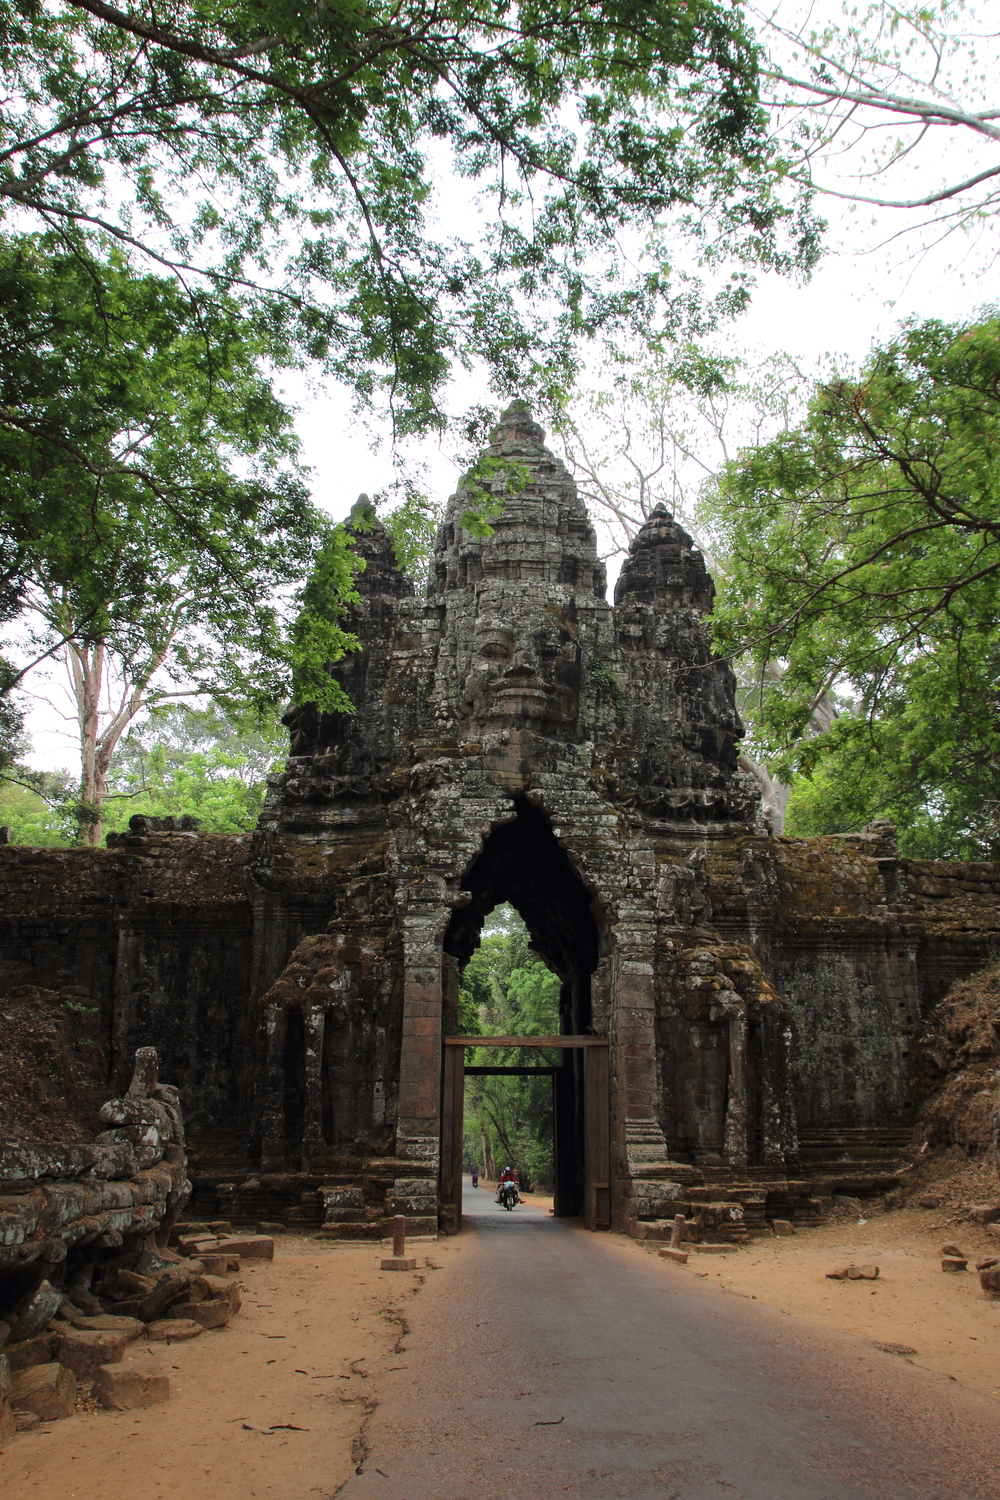 Gate to Angkor Thom